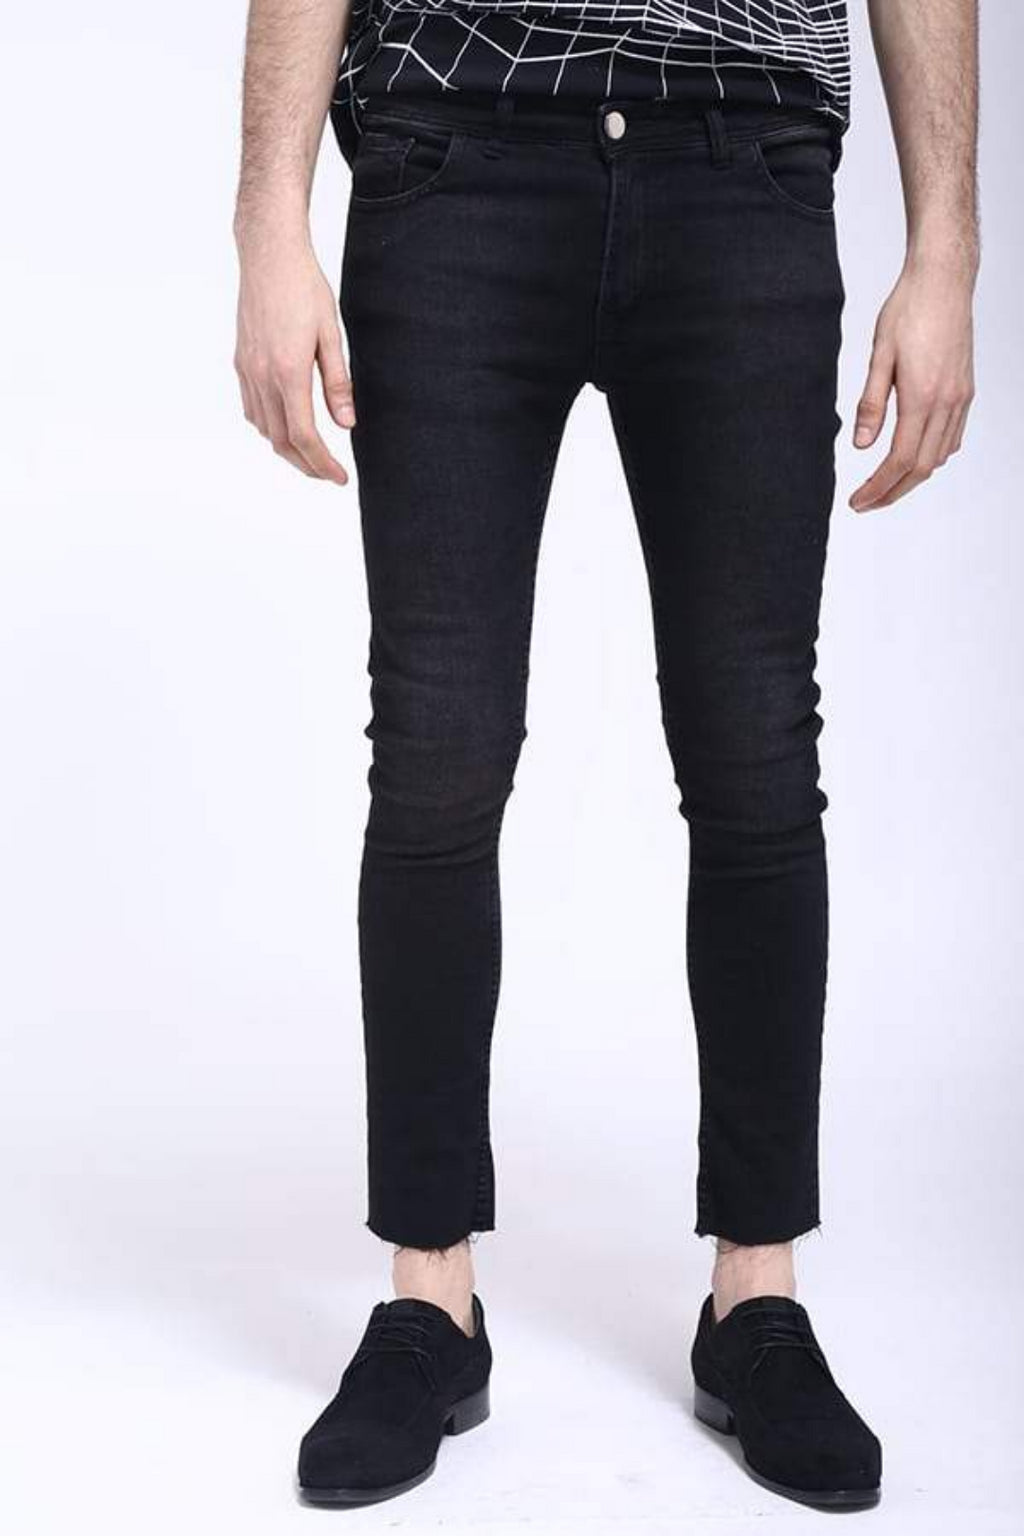 Berlin Black Mens Jean